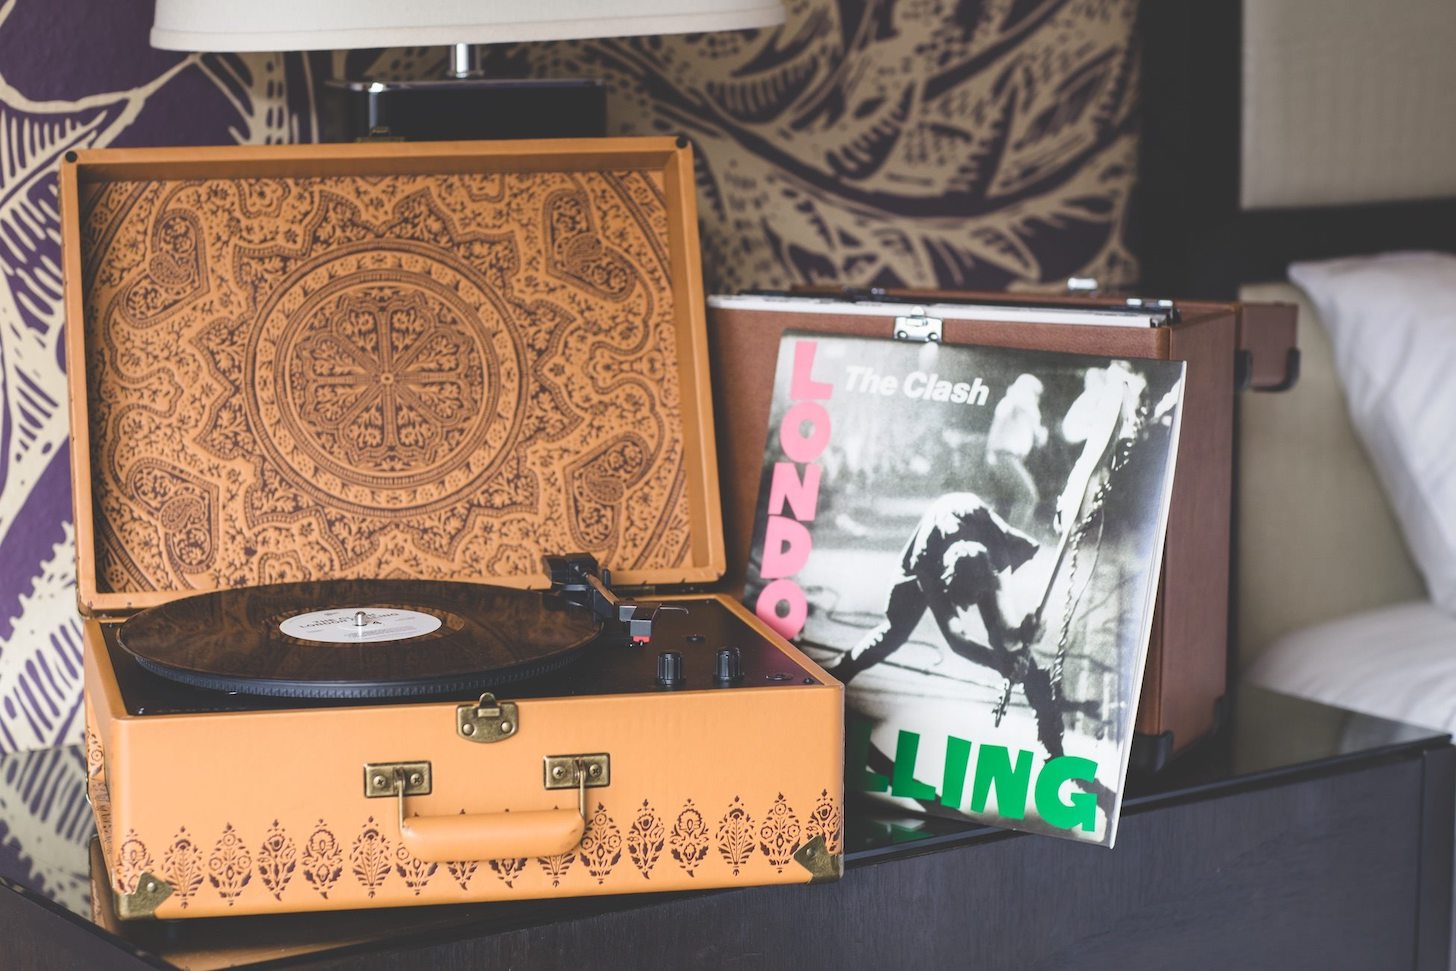 London Calling record player